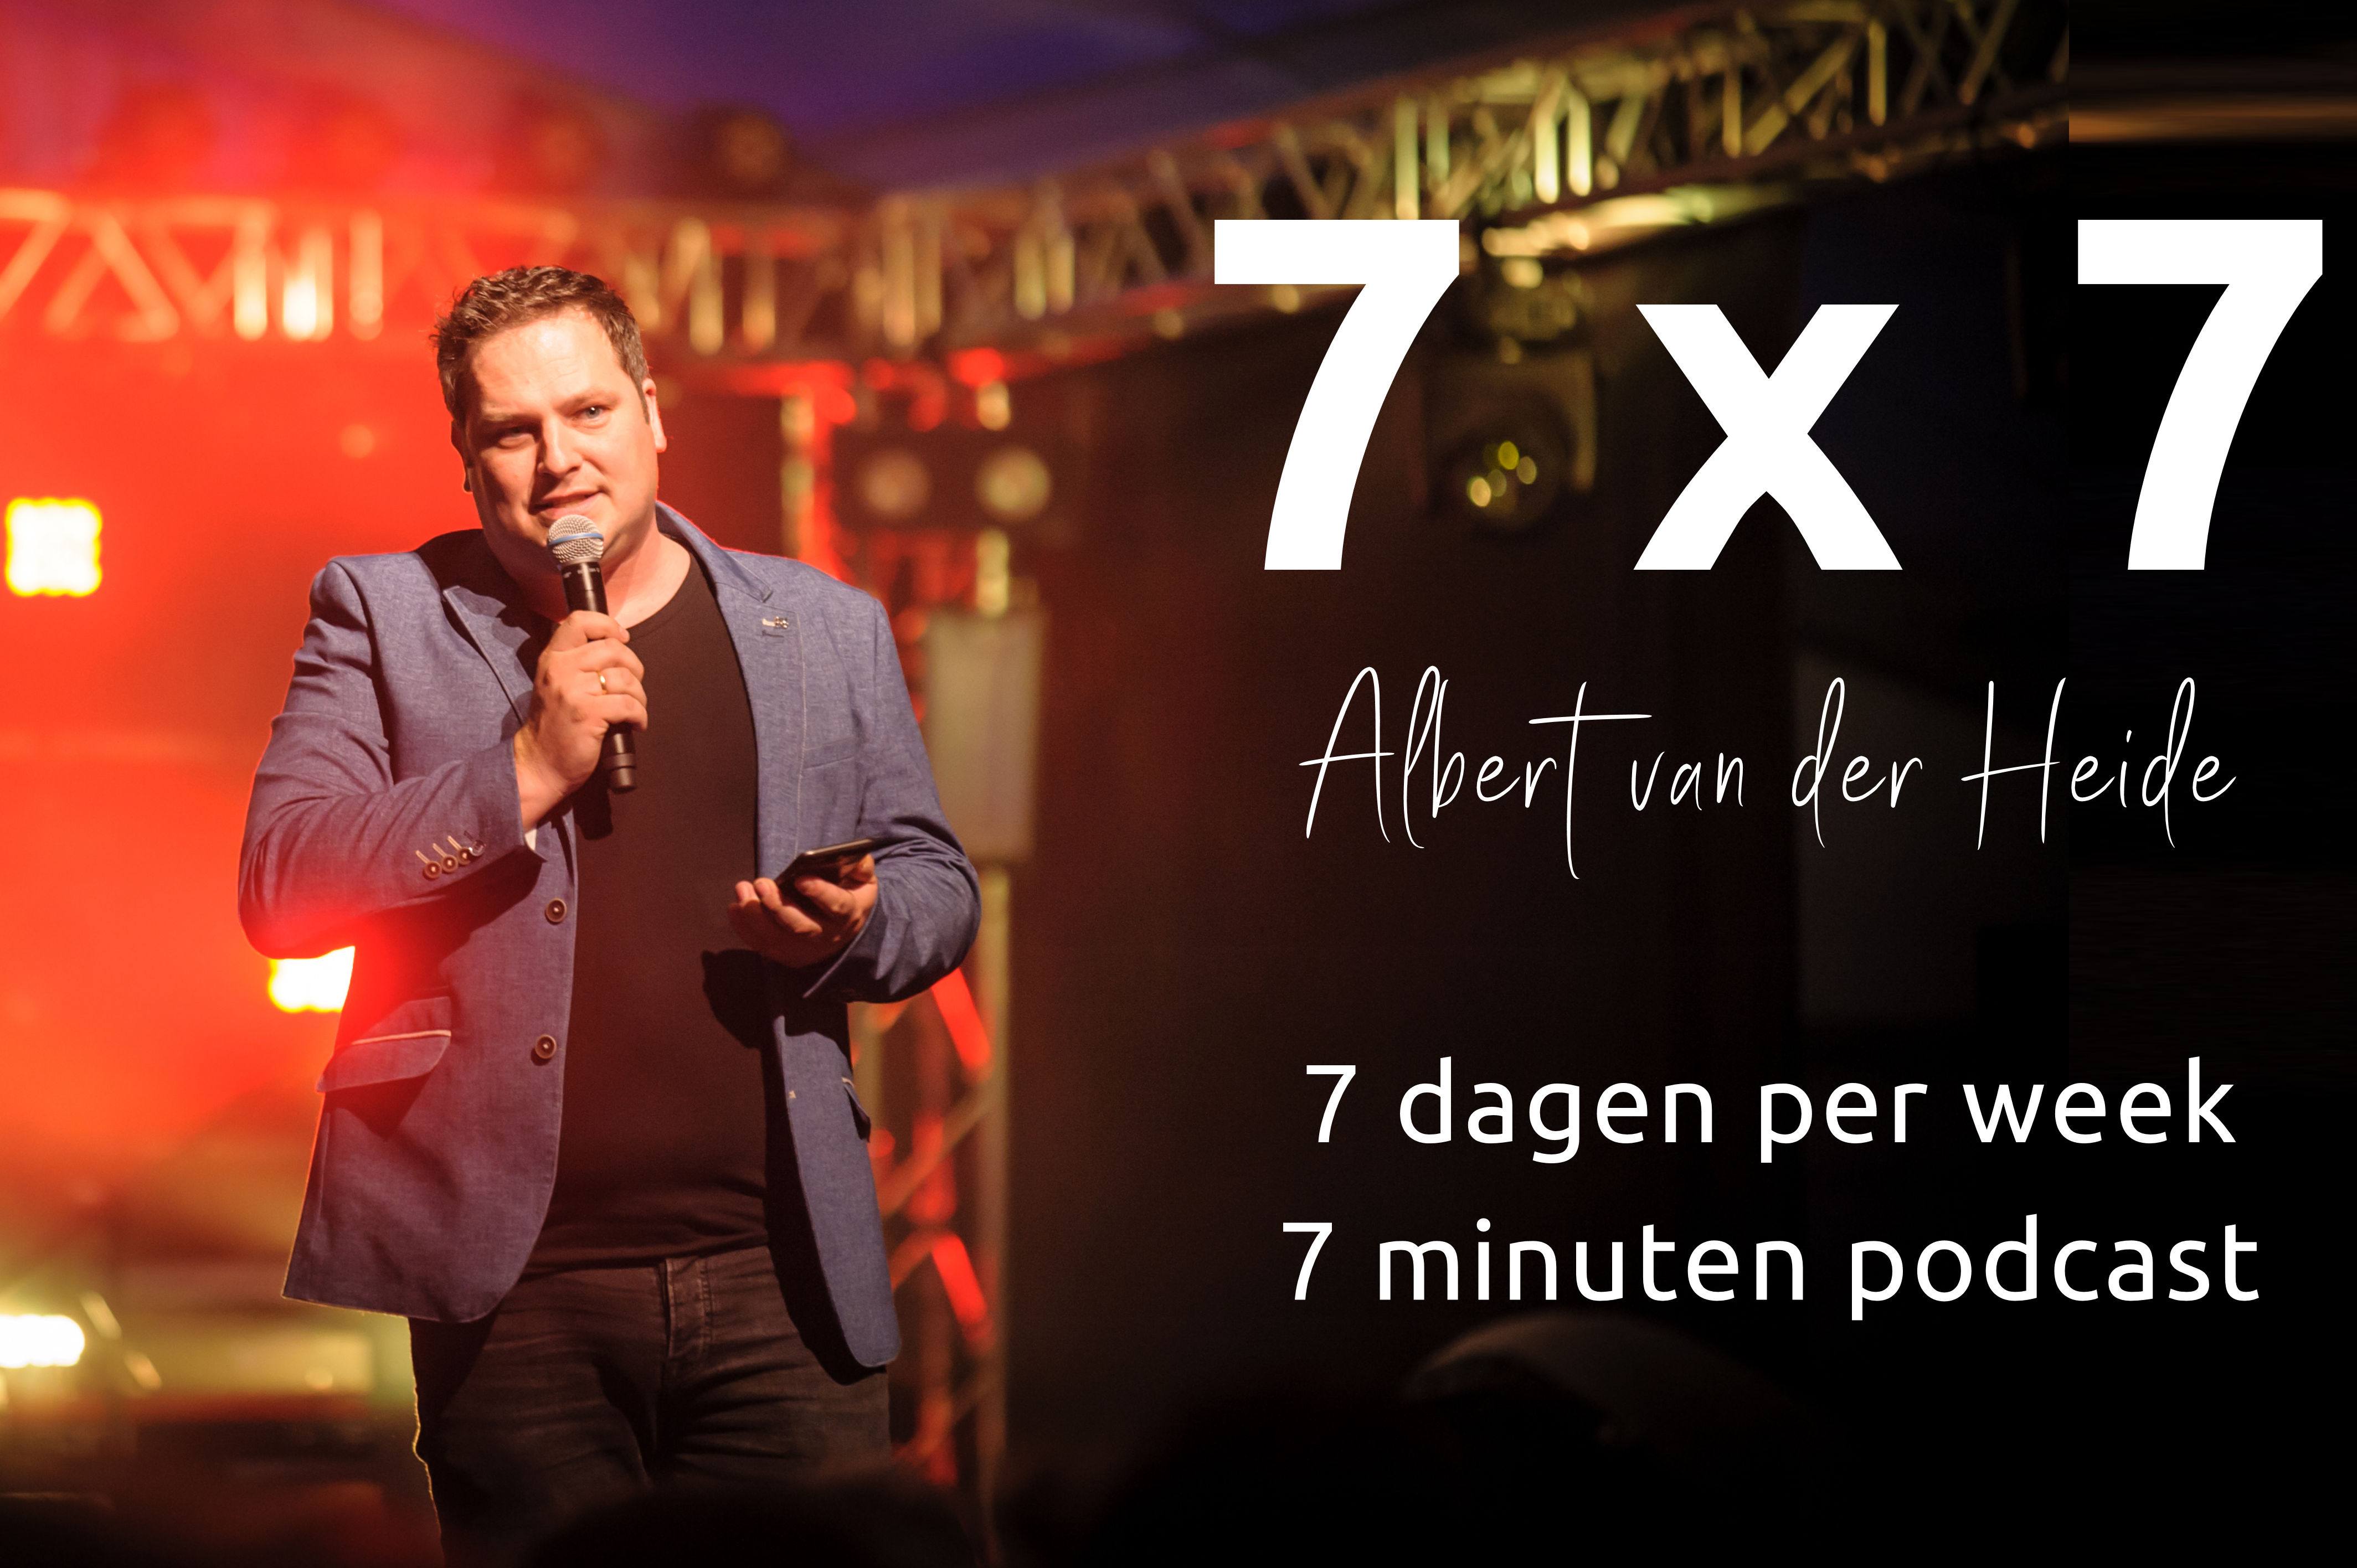 Podcast Albert van der Heide